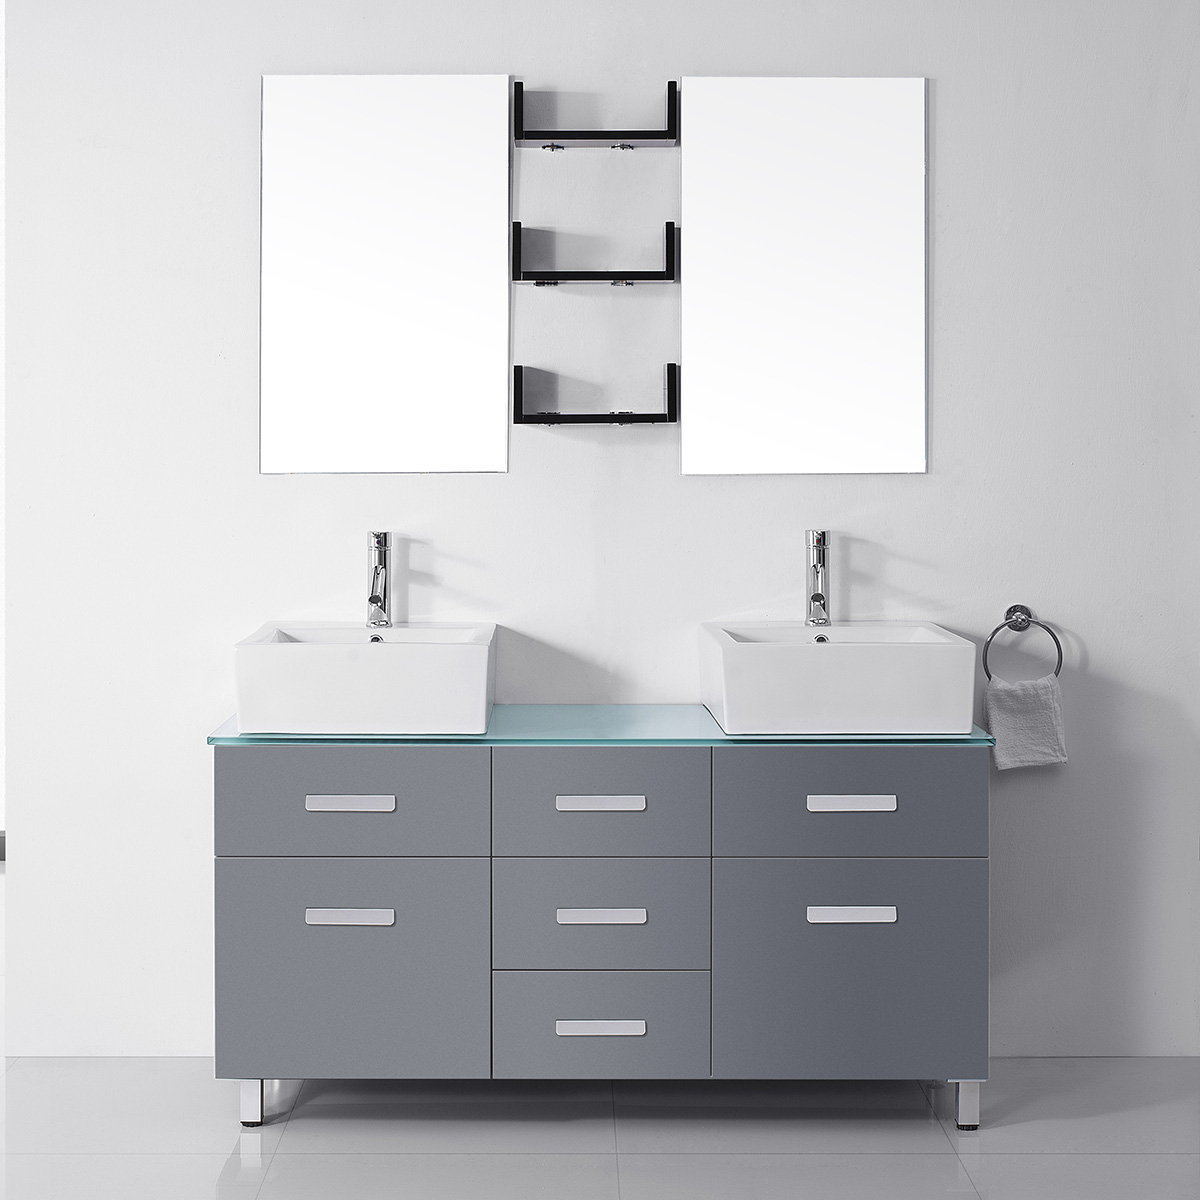 Virtu USA - UM-3063-G-GR-001 Maybell 5 inch Double Square Sink Glass Top Vanity in Grey with Brushed Nickel Faucet and Mirrors